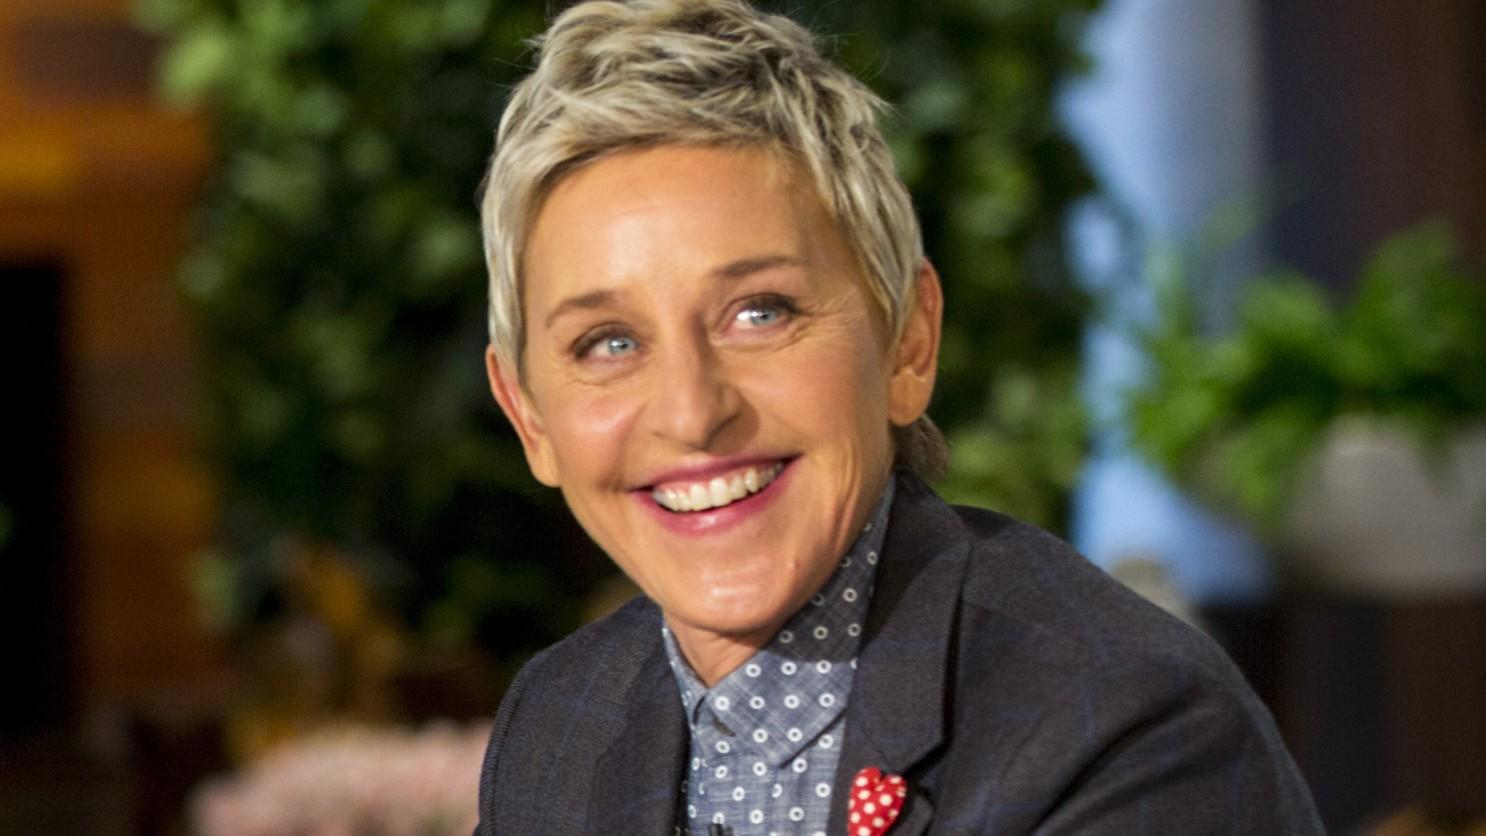 Ellen DeGeneres - 11 Talk Show Employees Come Forward About The 'Toxic Work Environment' They Have Experienced!